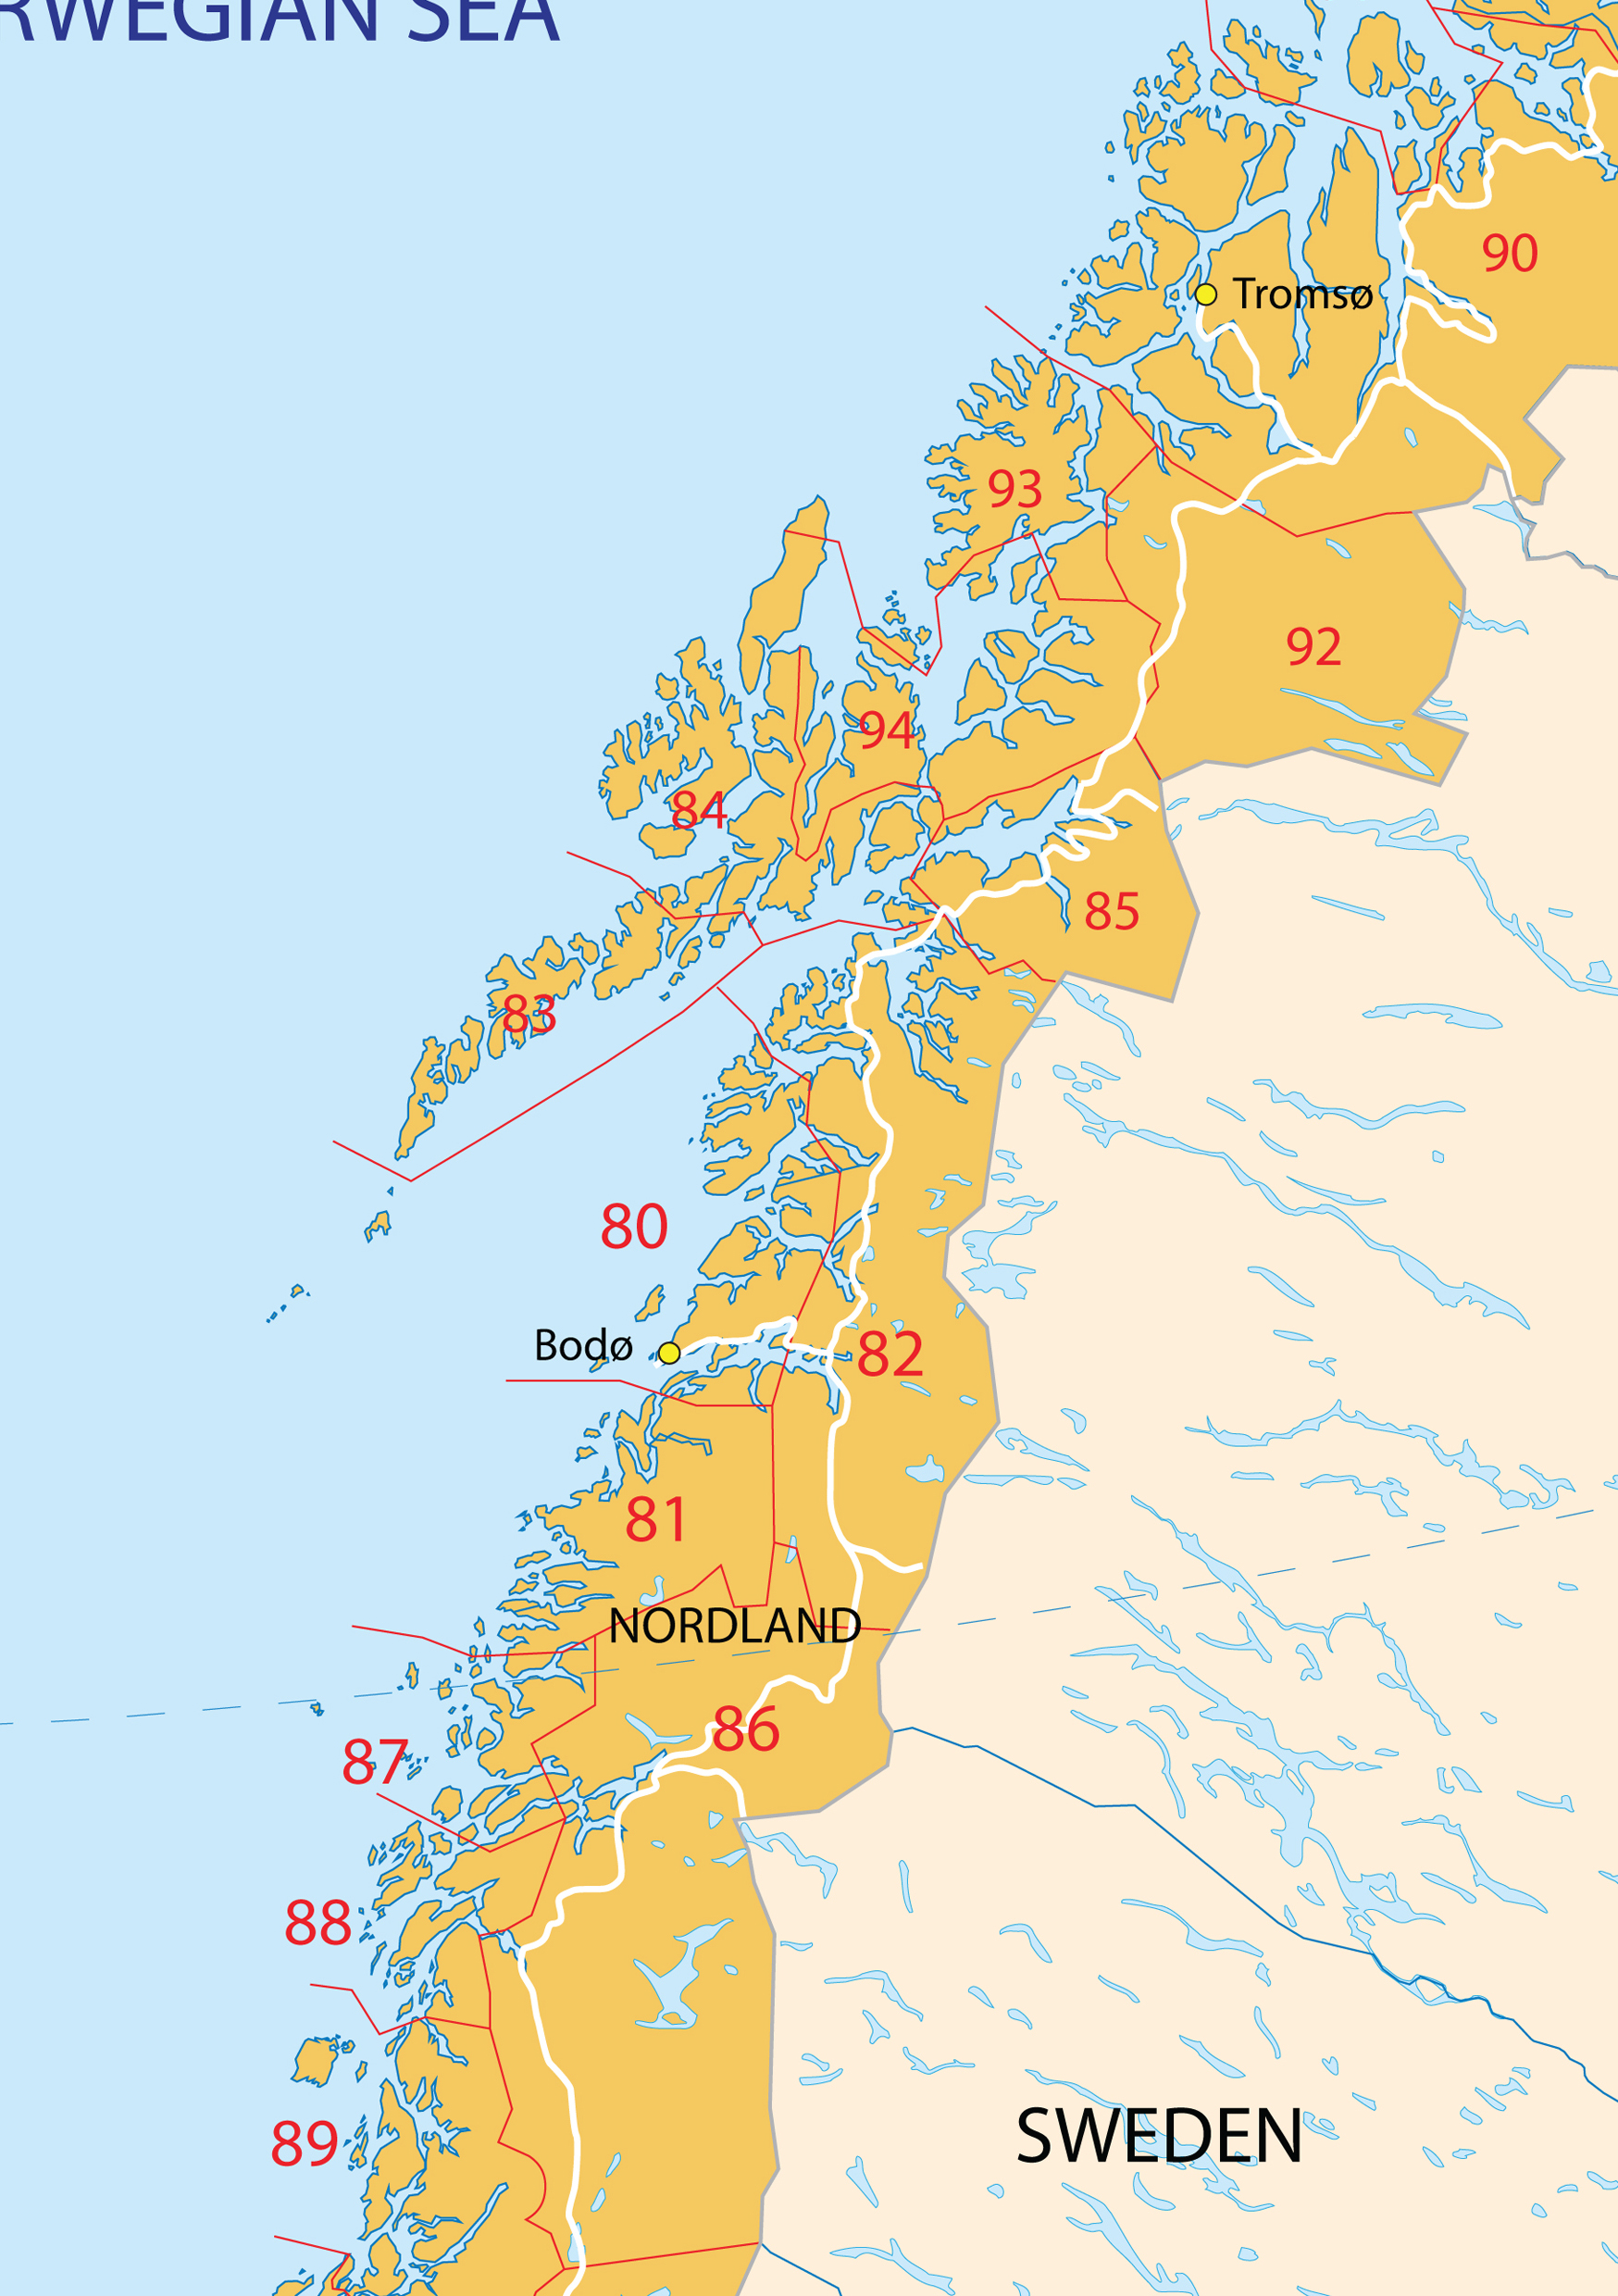 Digital postcode map Norway 2digit 201 The World of Mapscom